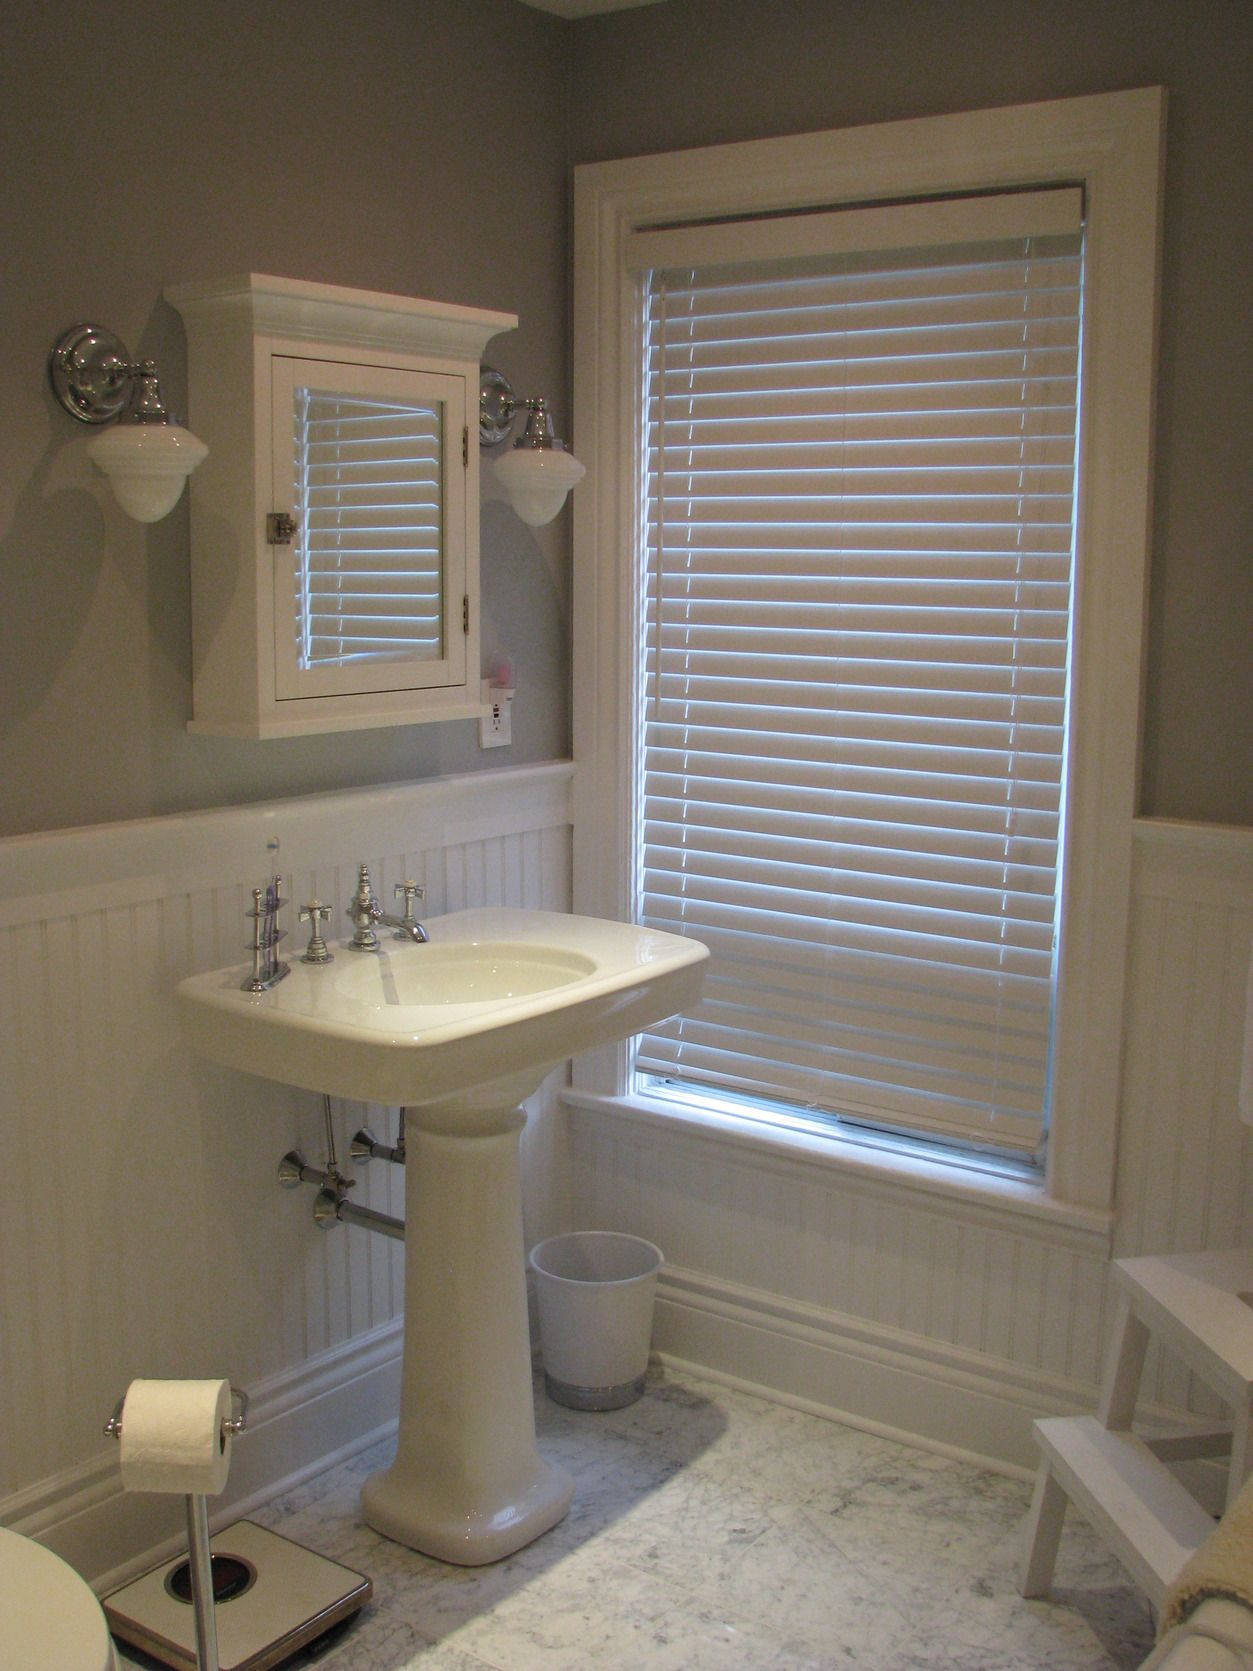 Wood Wainscoting Vs Subway Tile In Master Bath Bathroom